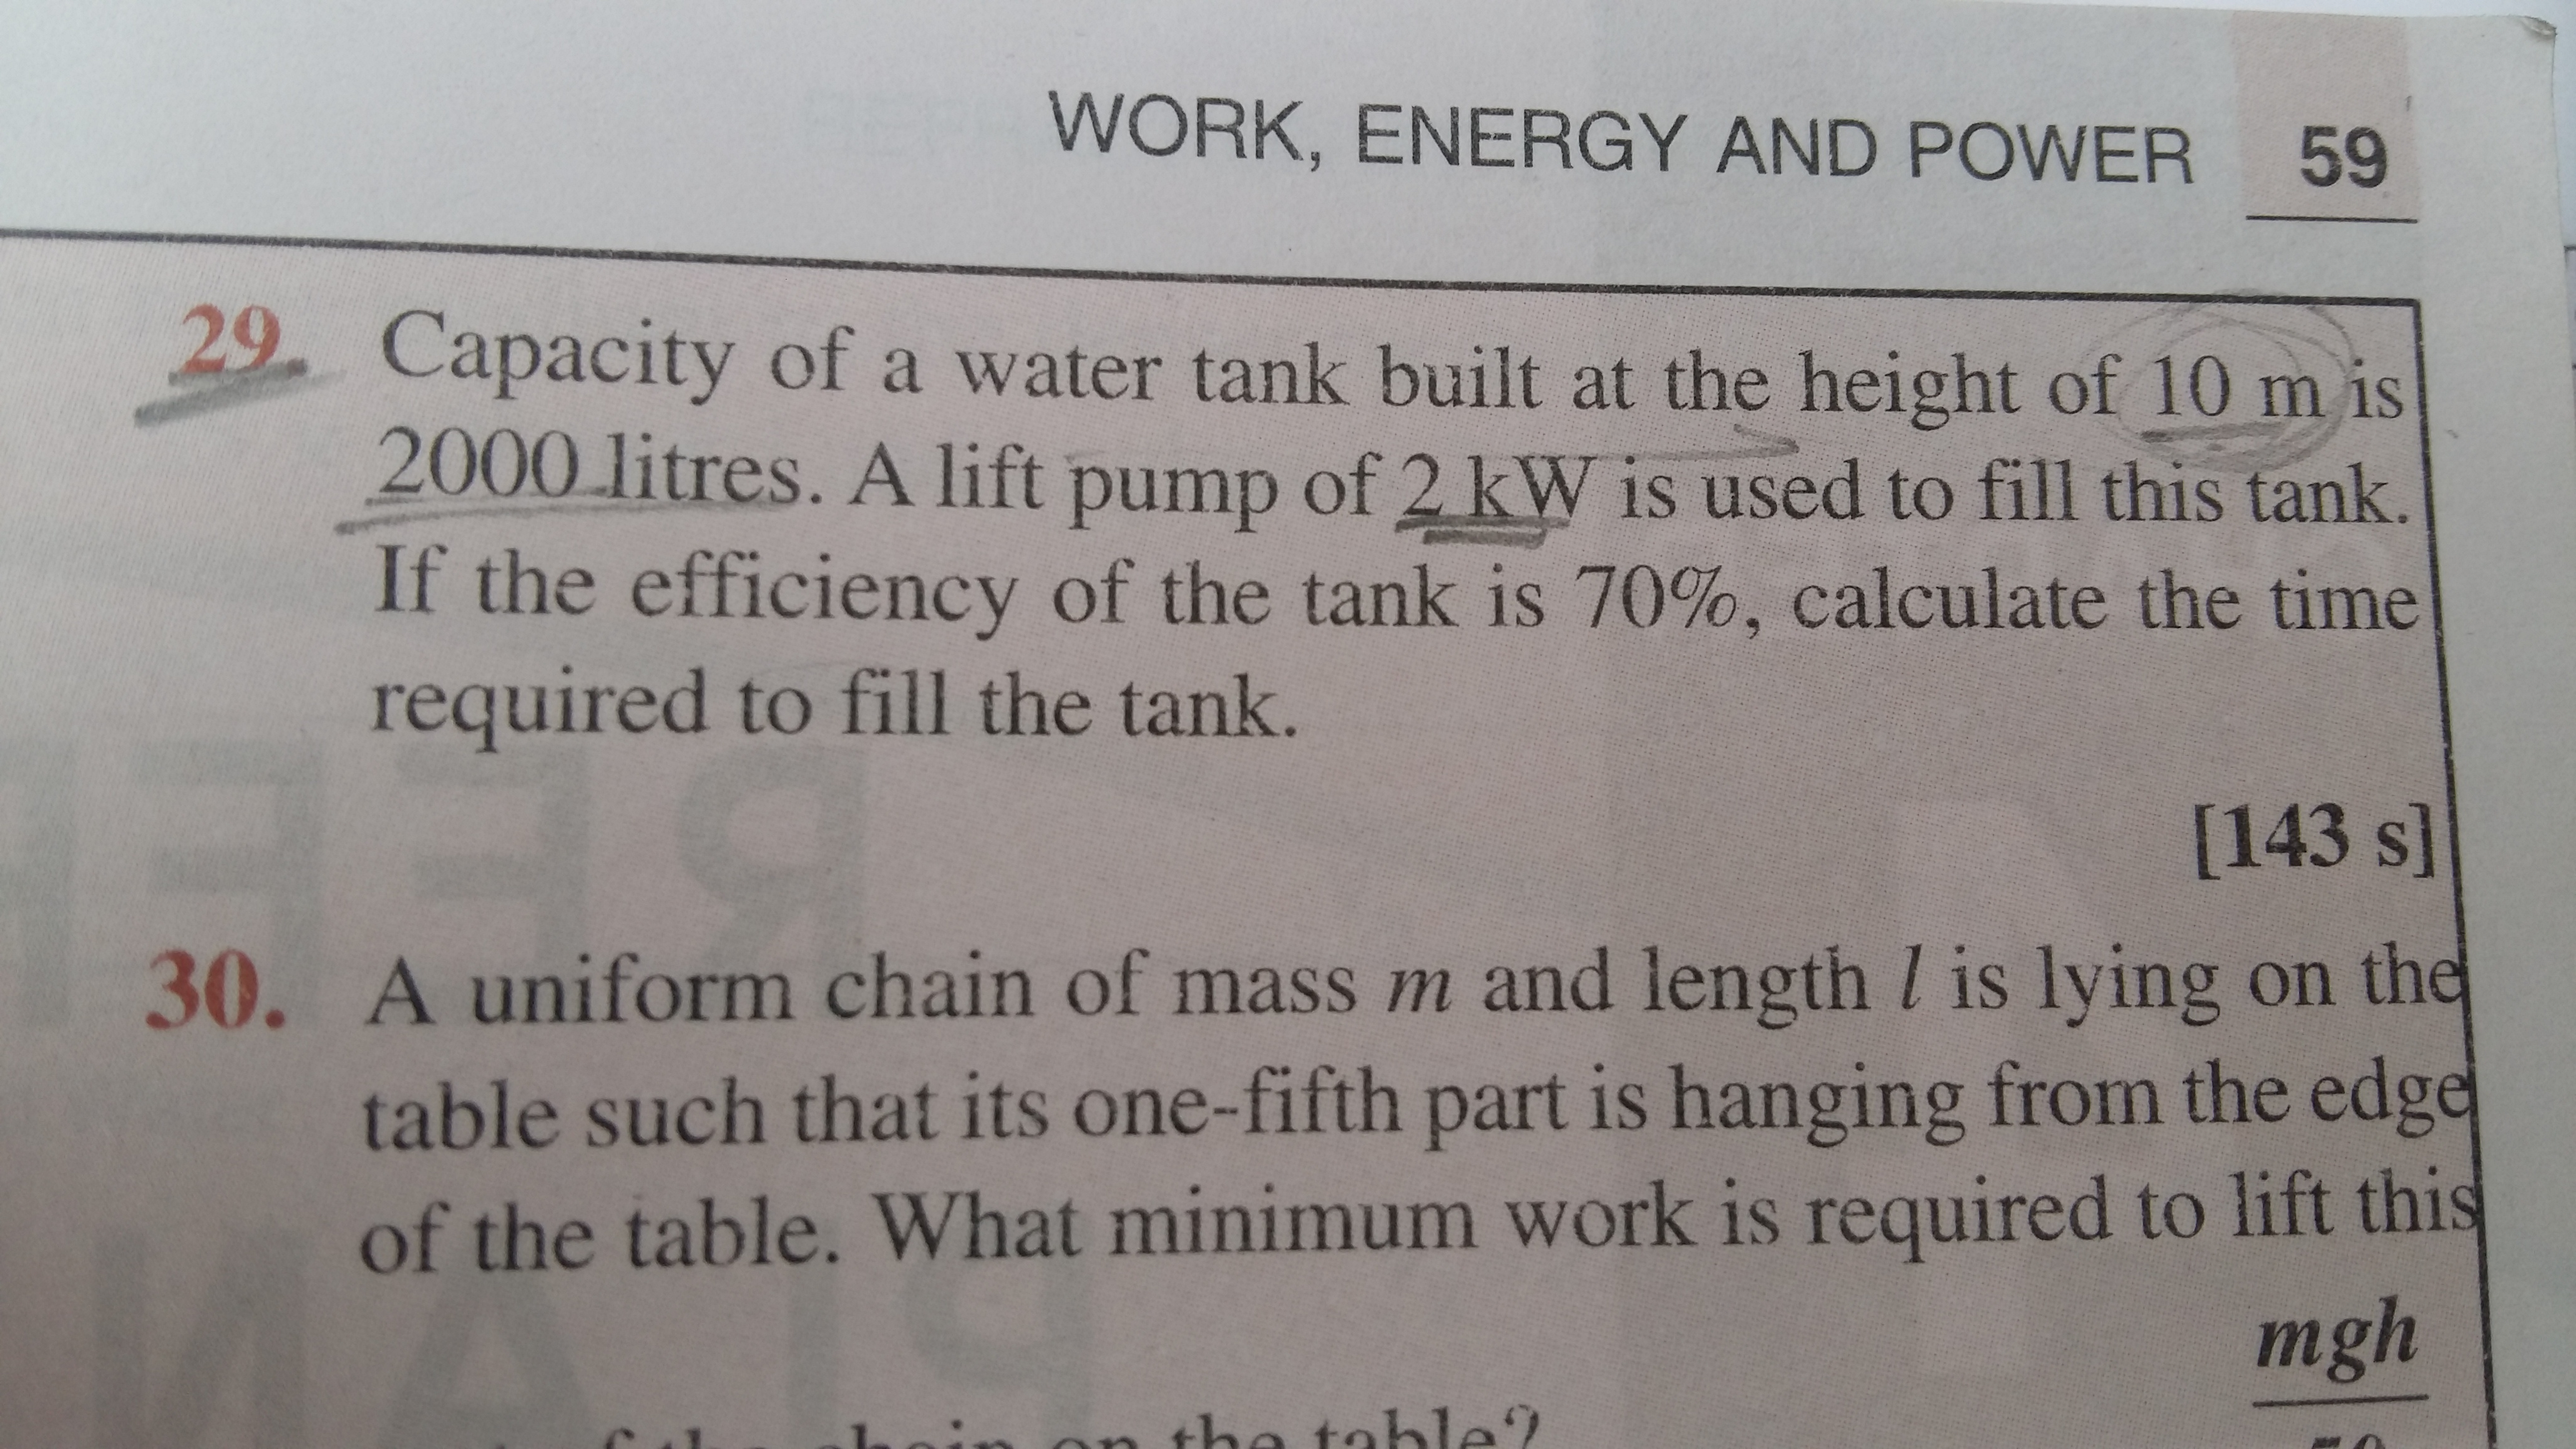 work energy theorem Questions and Answers - TopperLearning